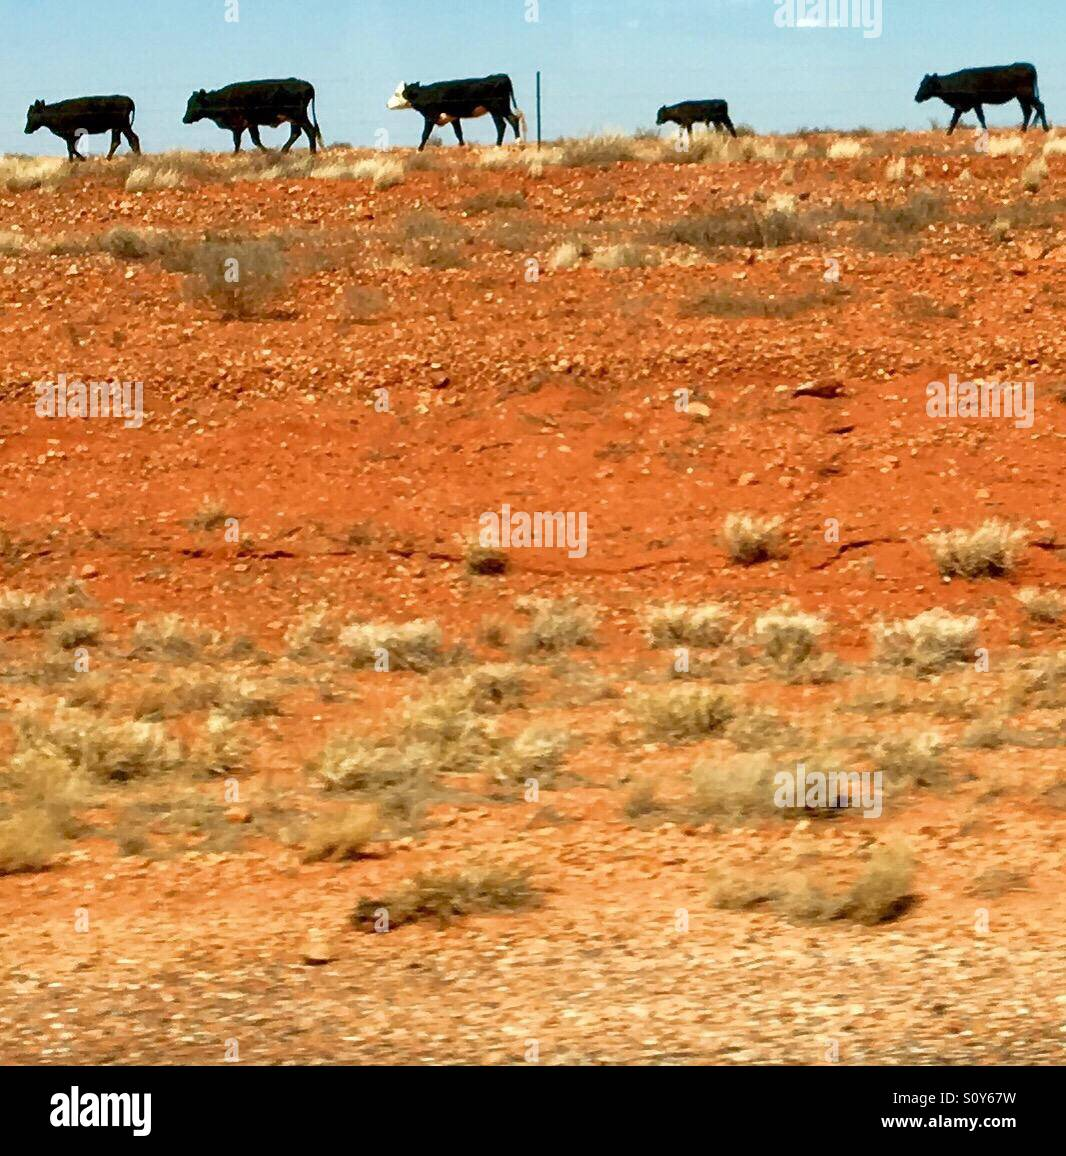 Australian outback cows - Stock Image